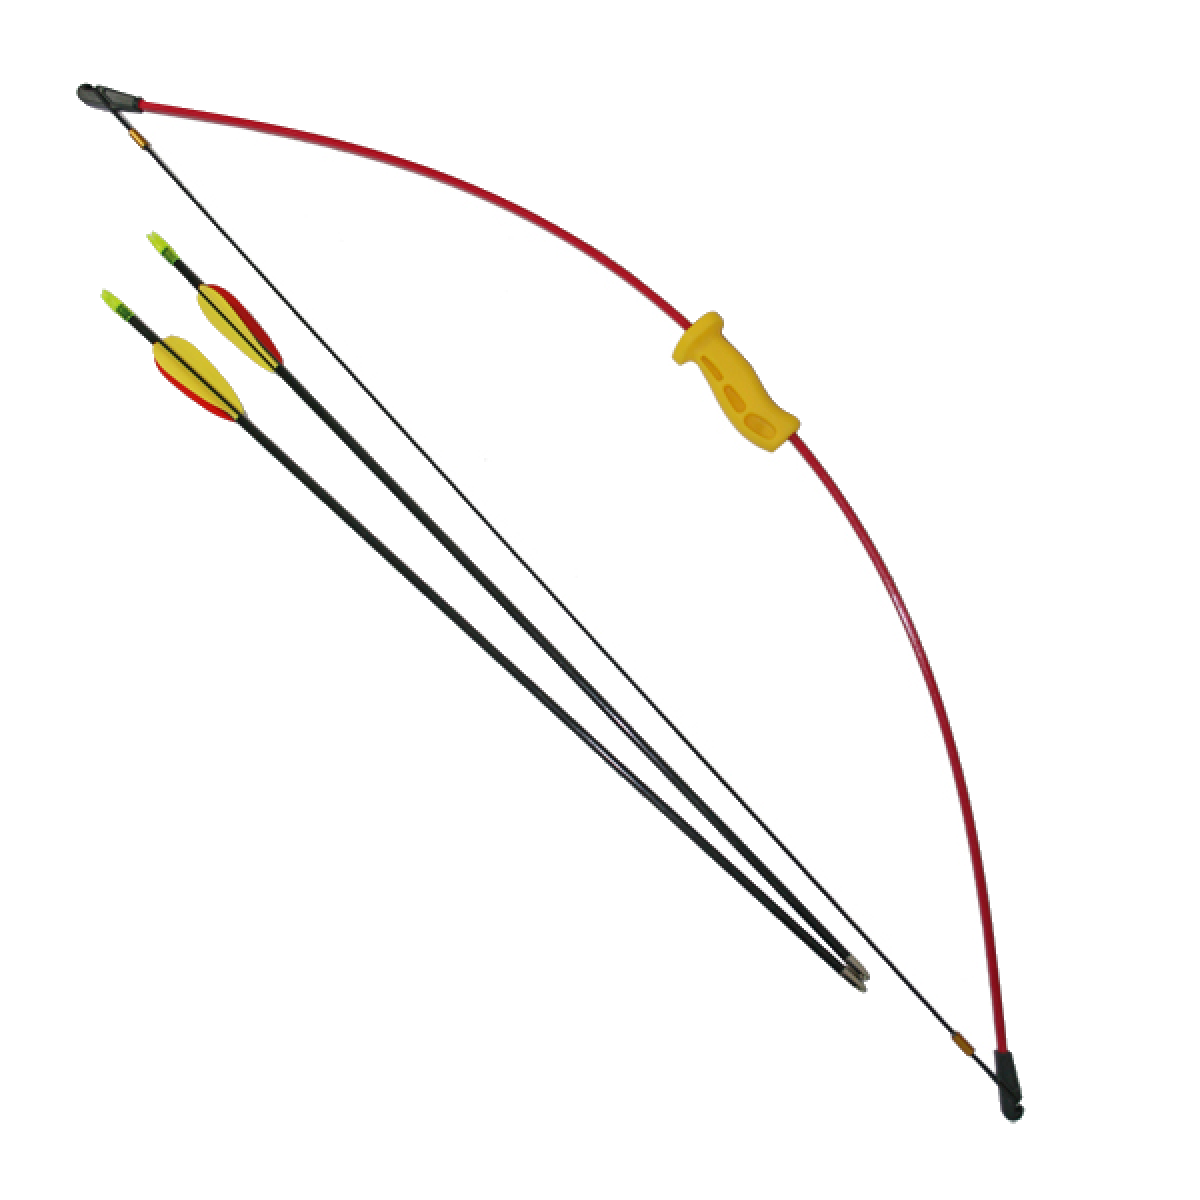 Archery 36 inch 10lb Starter Bow and Arrow Set - Archery Bow And Arrow PNG